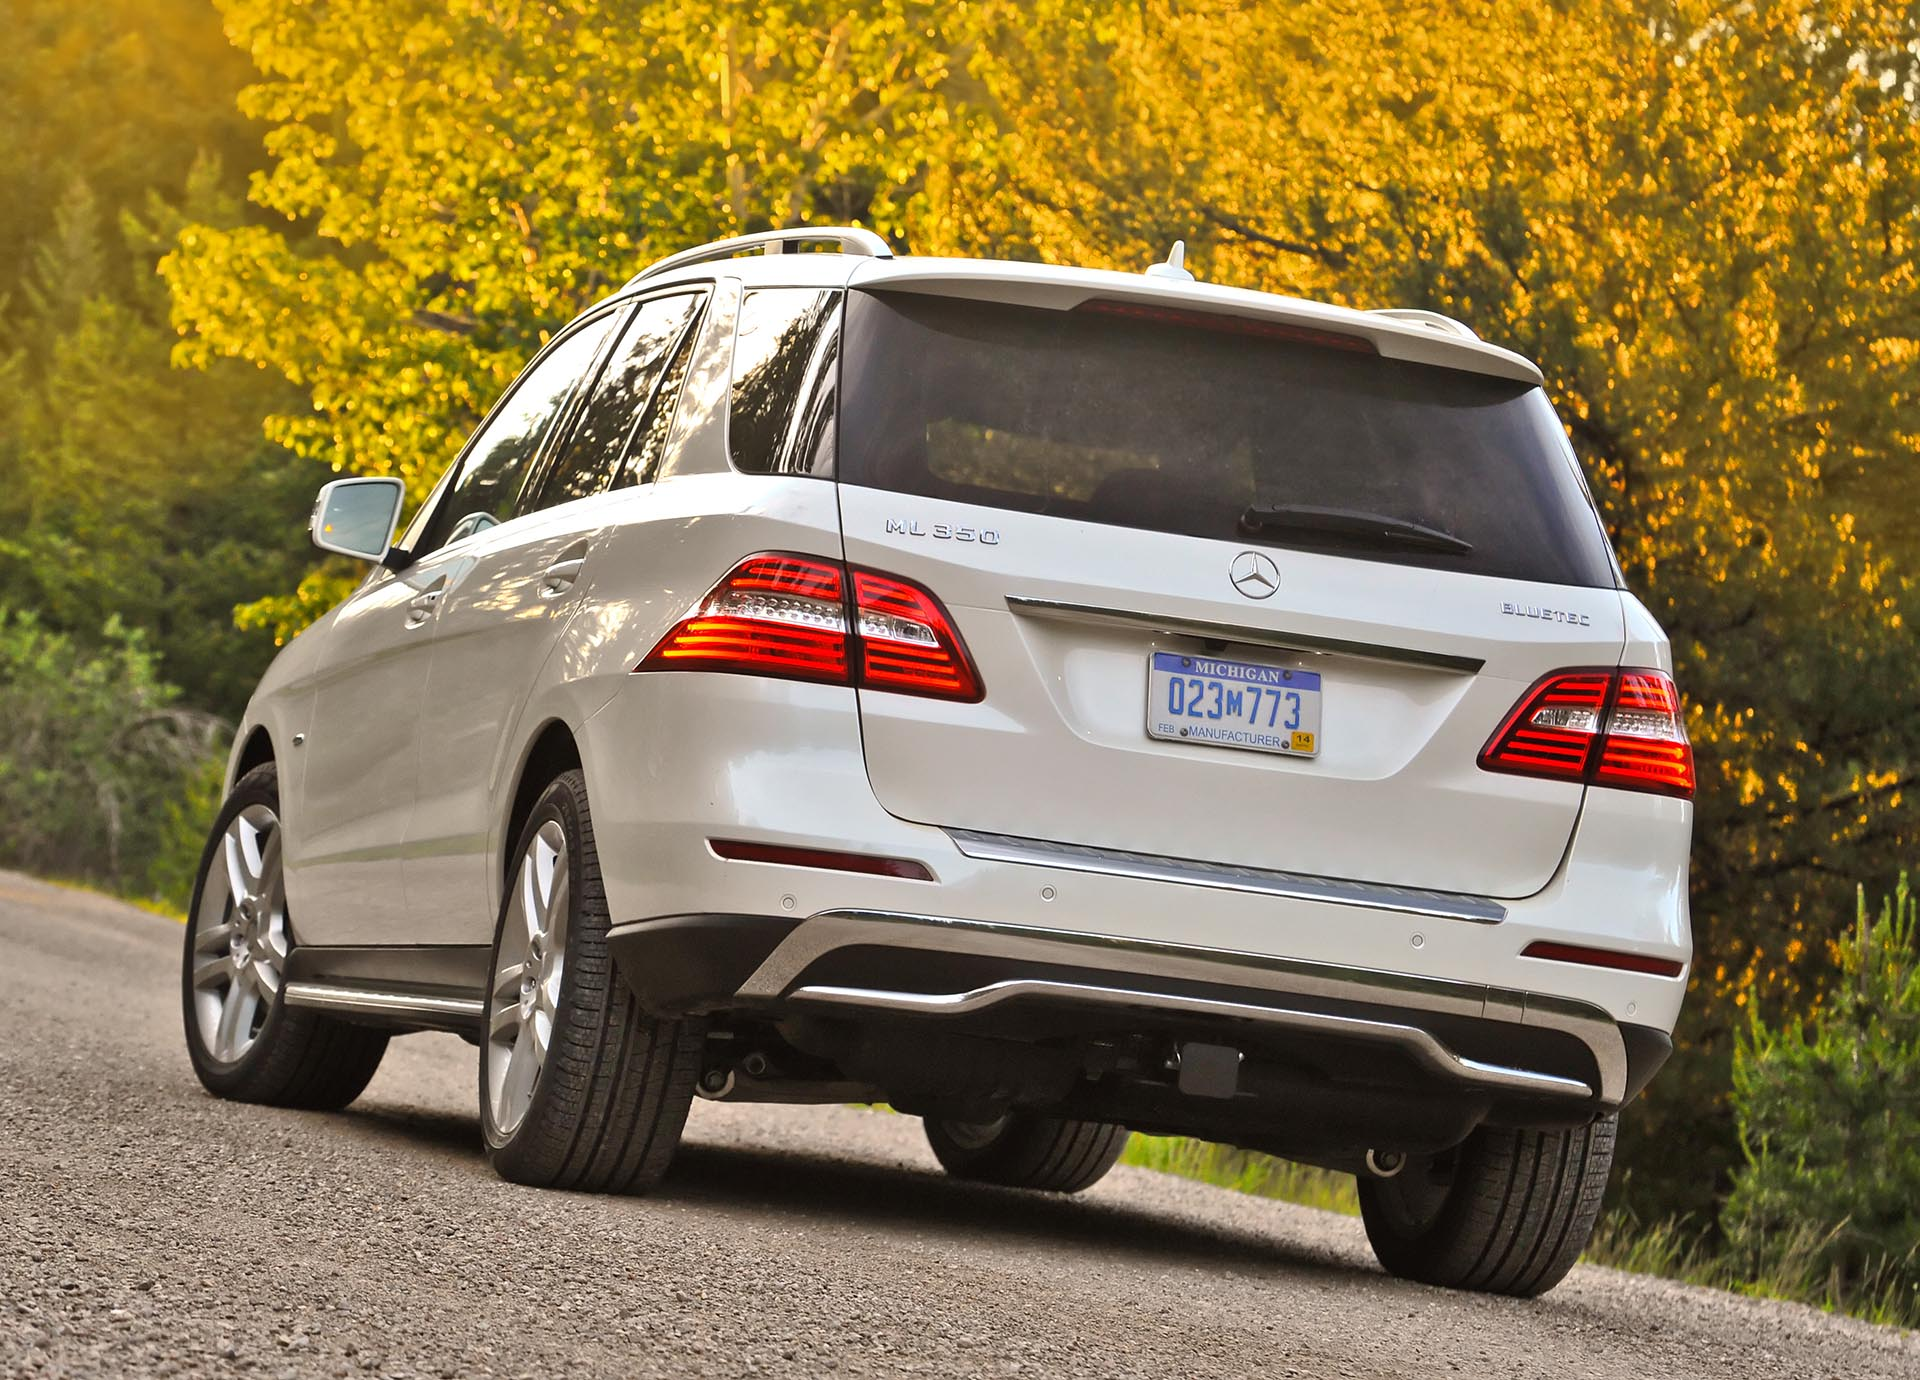 03.5_Mercedes-Benz ML350 BlueTEC rear